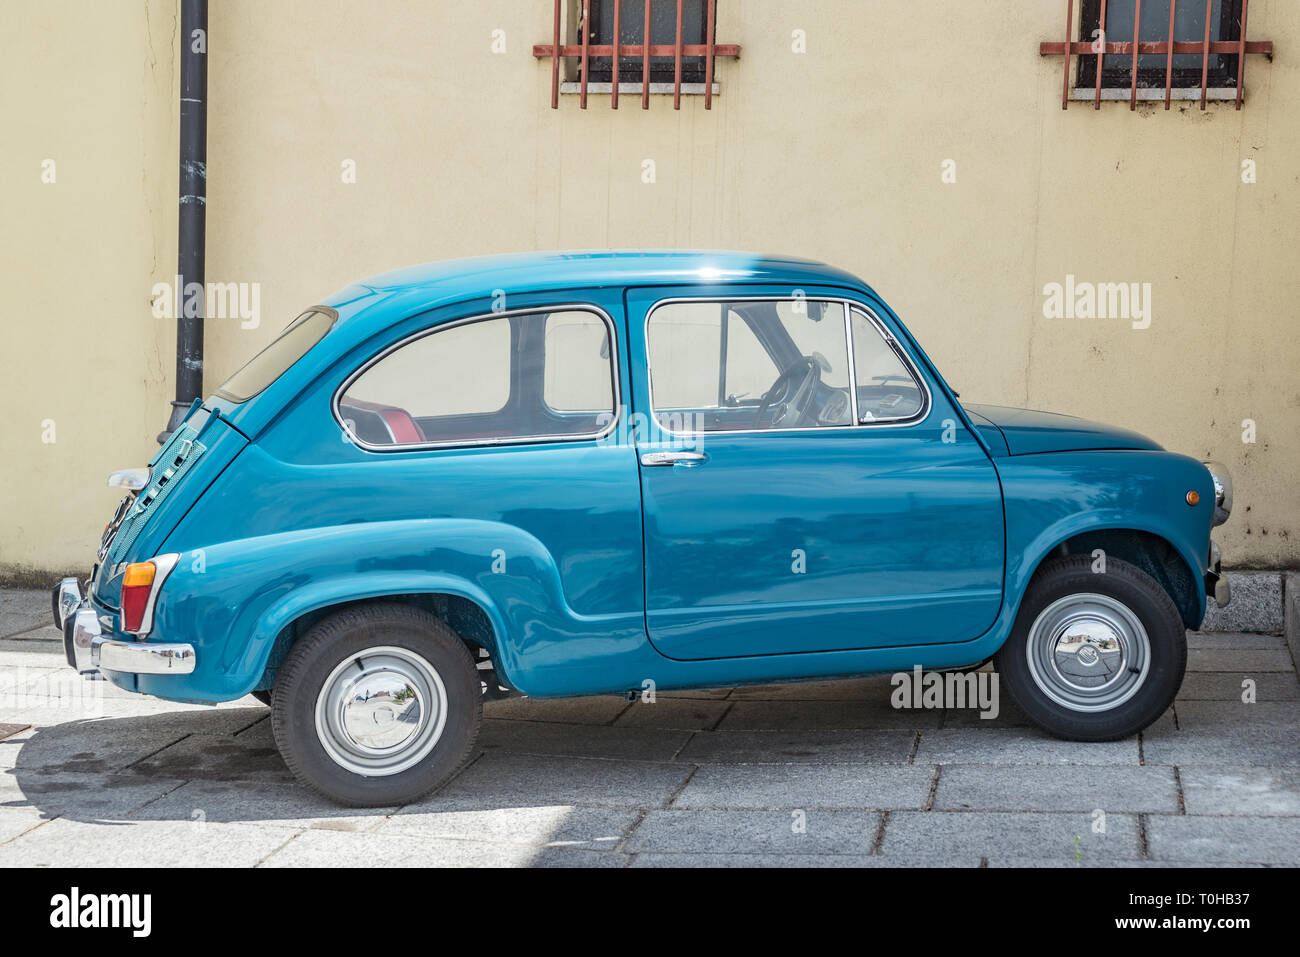 Fiat 600 : old, small, vintage italian car in perfect condition - Stock Image